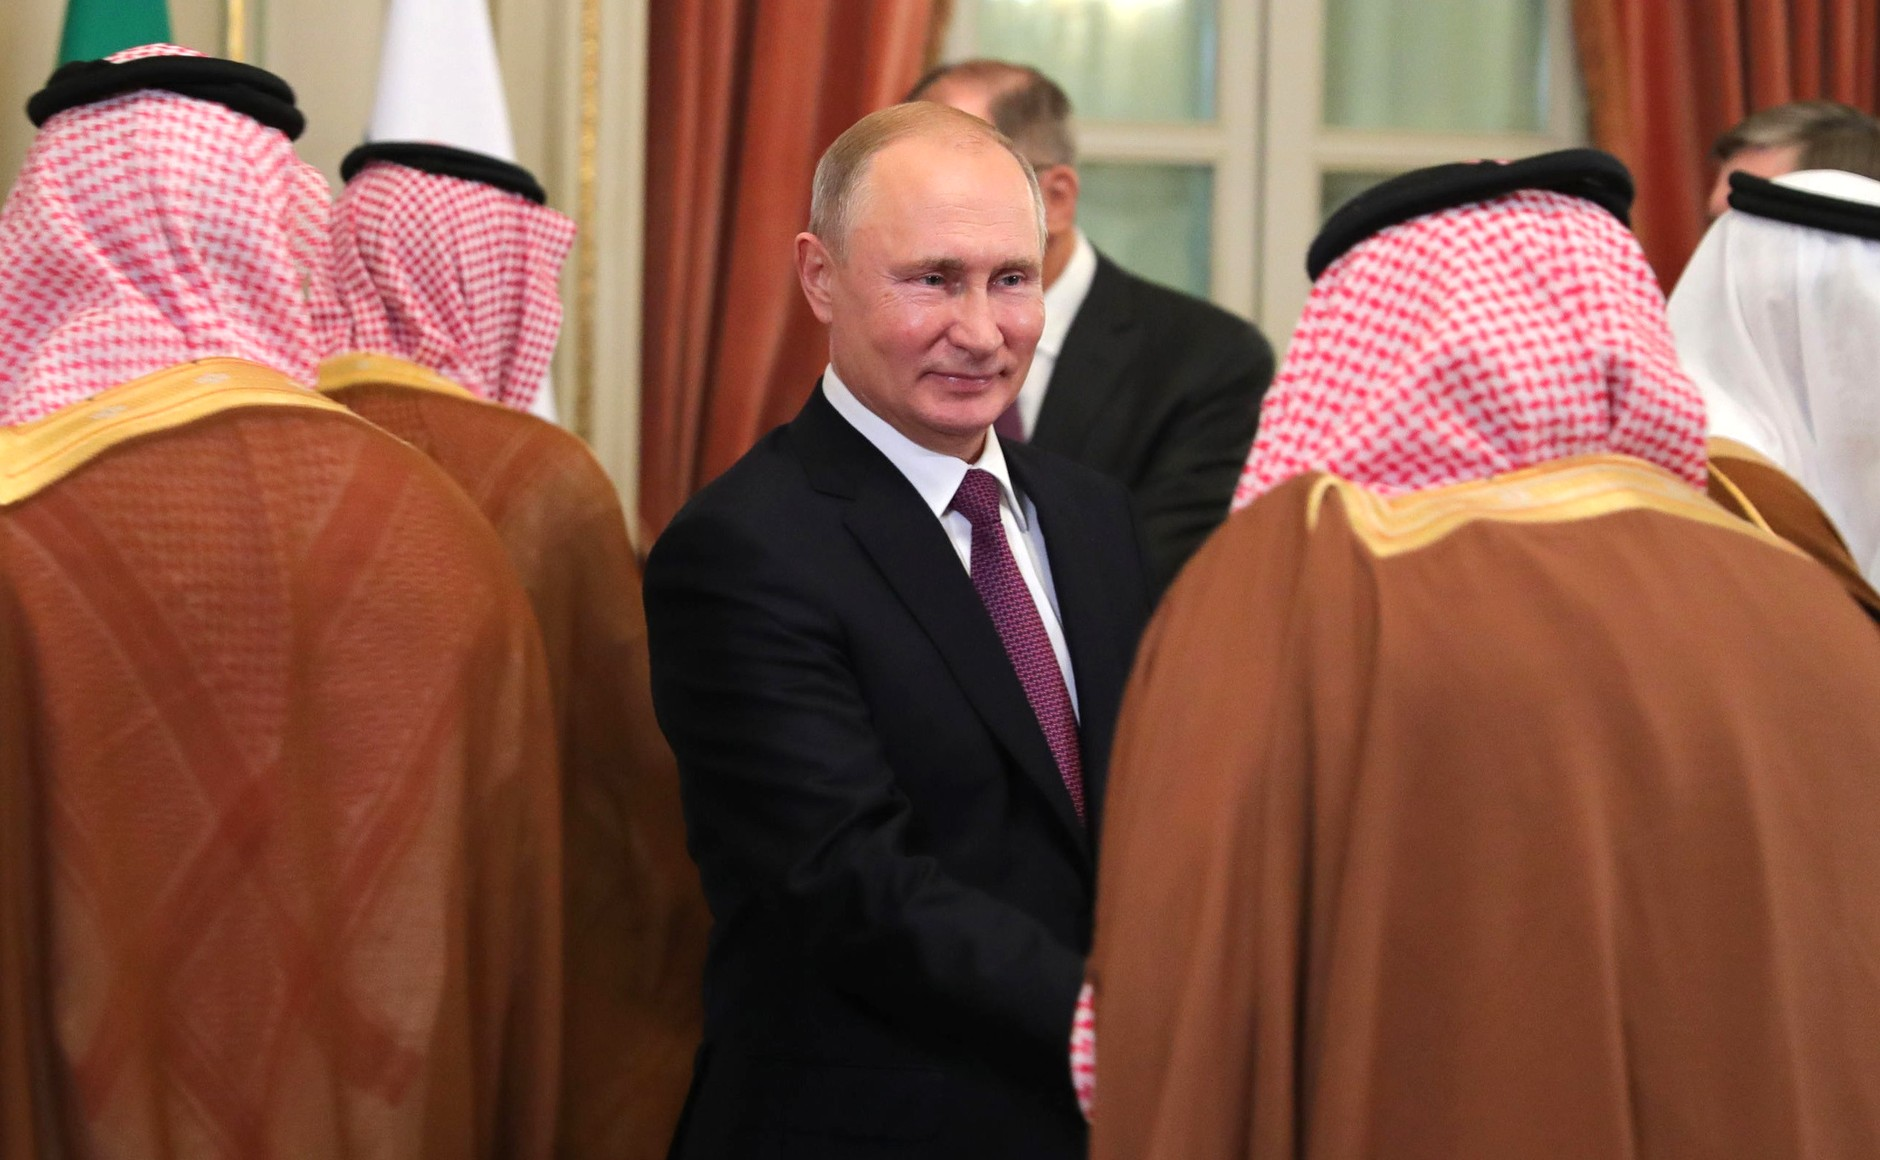 Russian President Vladimir Putin before a meeting with Saudi leaders, Dec. 1, 2018. (Kremlin)